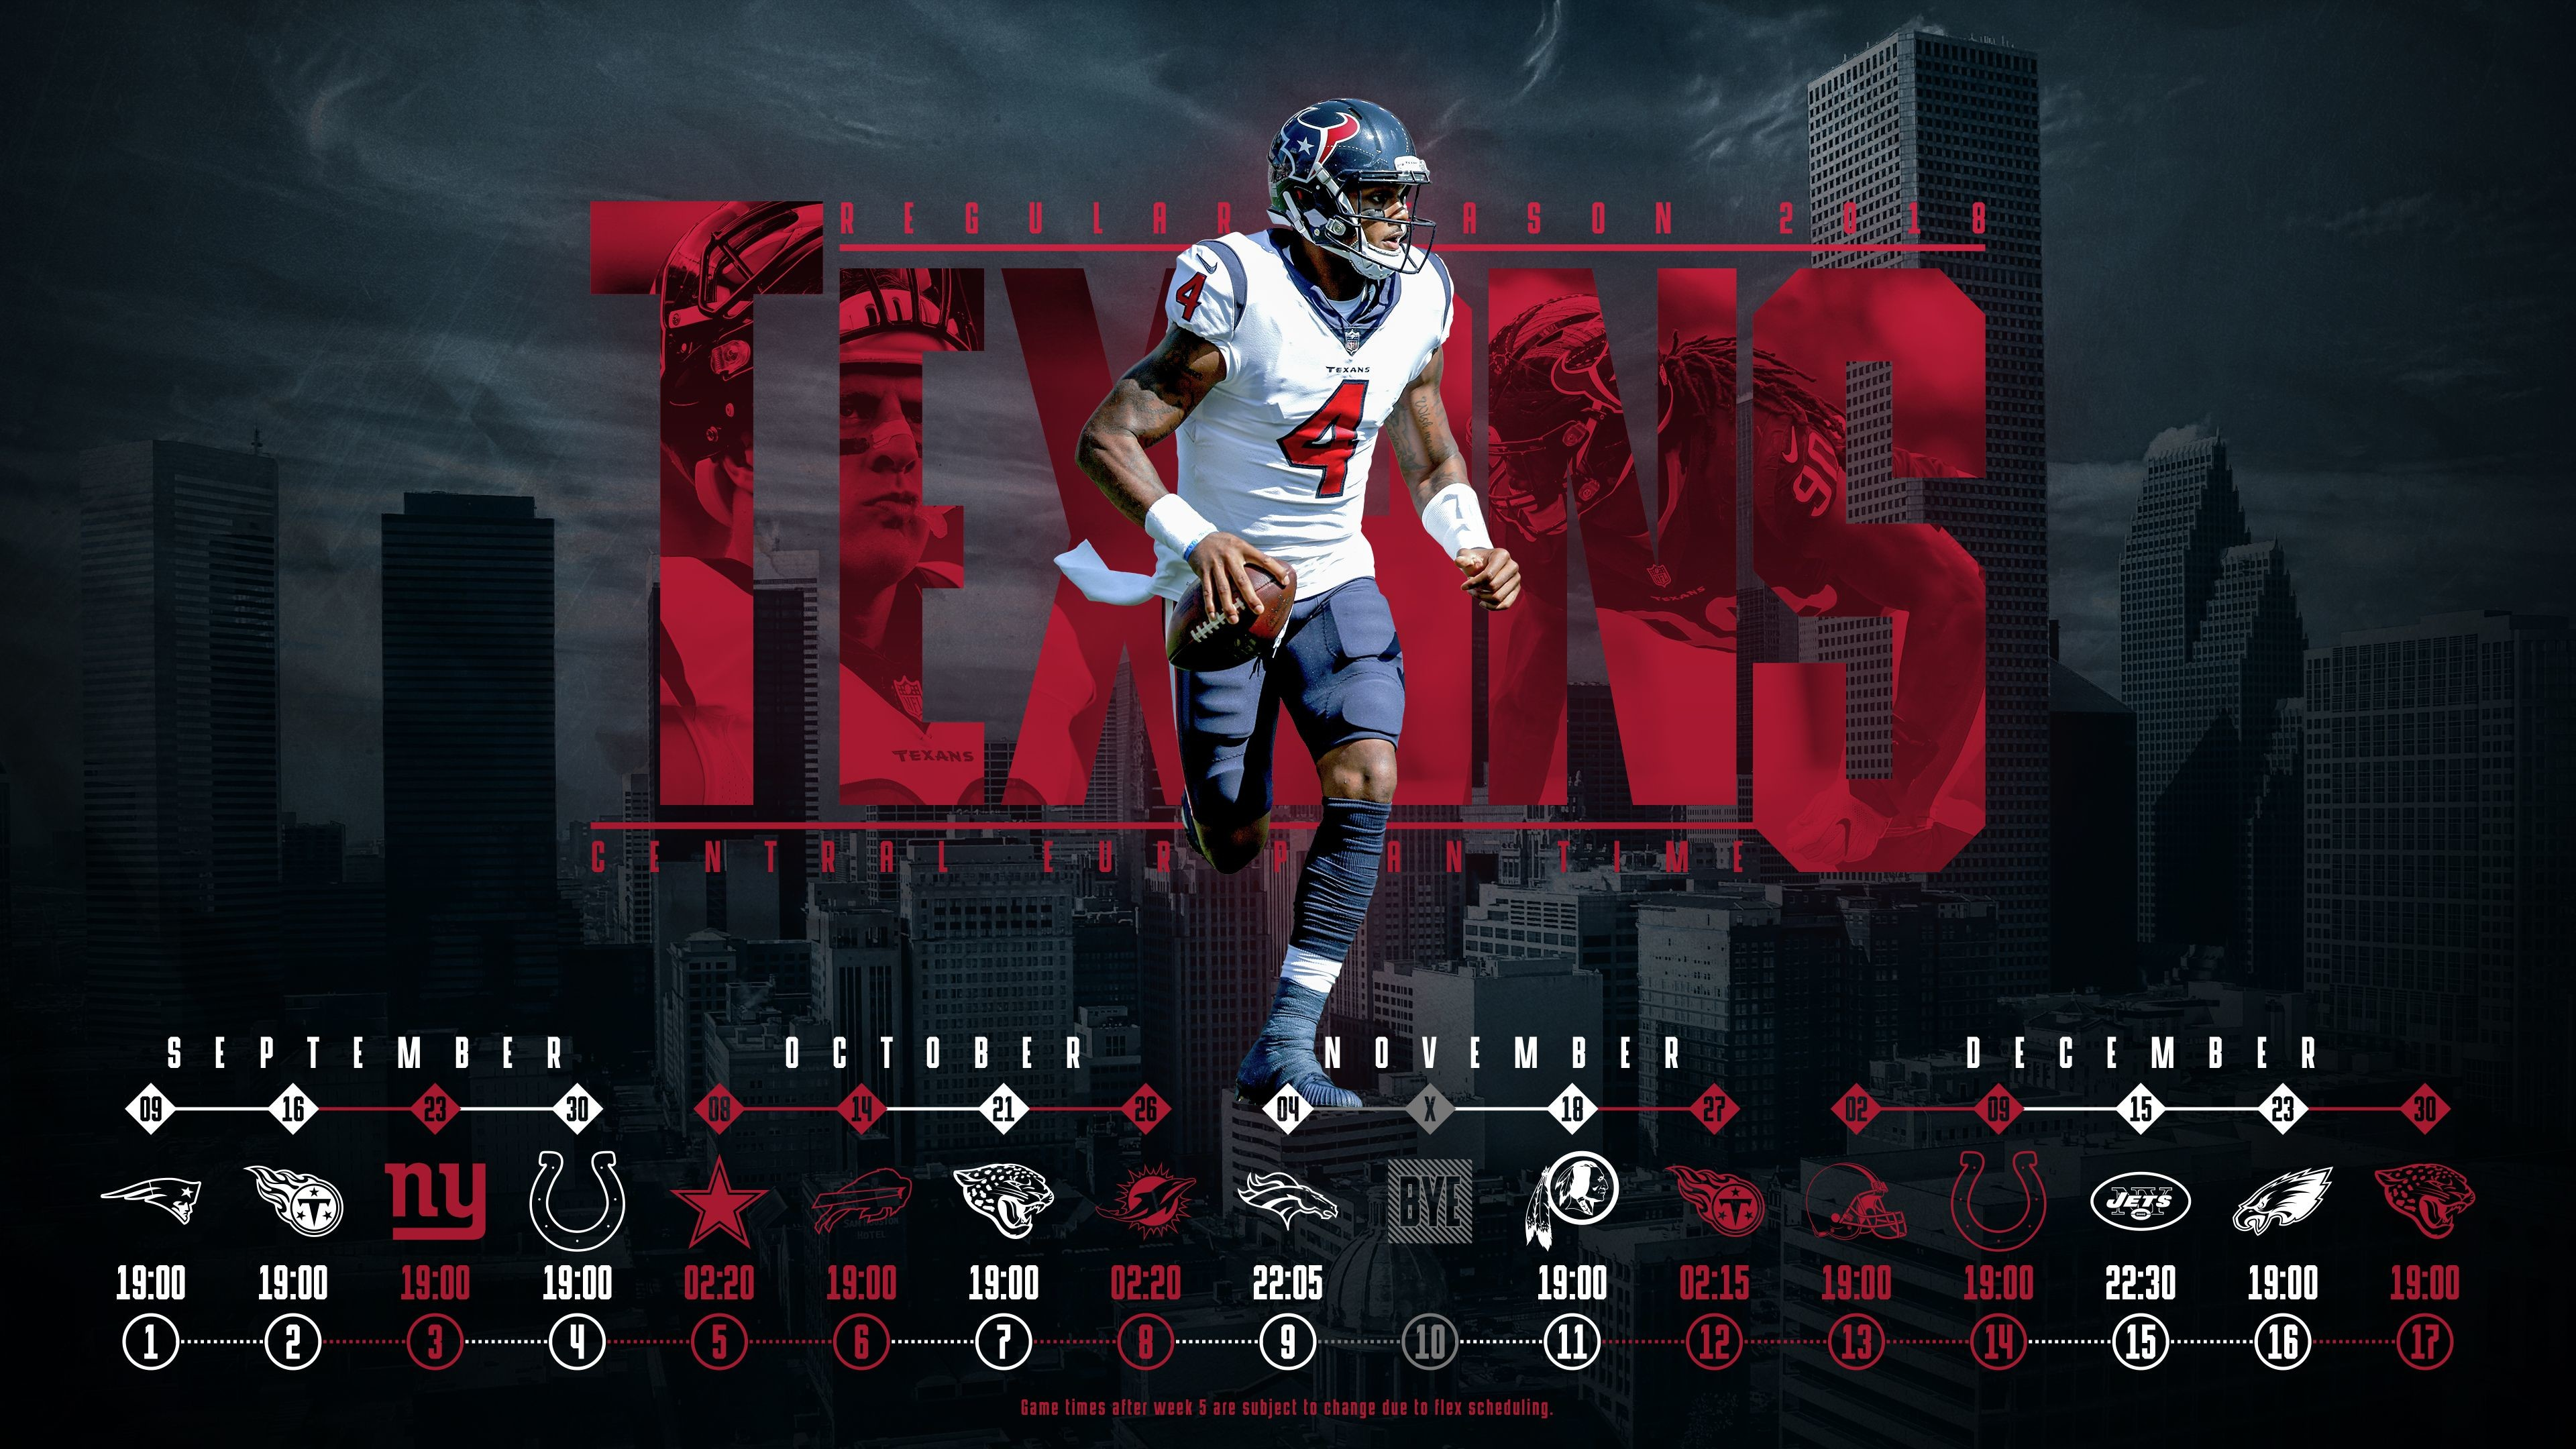 3840x2160 Schedule wallpaper for the Houston Texans Regular Season, 2018 Central  European Time. Made by Tobler Gergő #tgersdiy